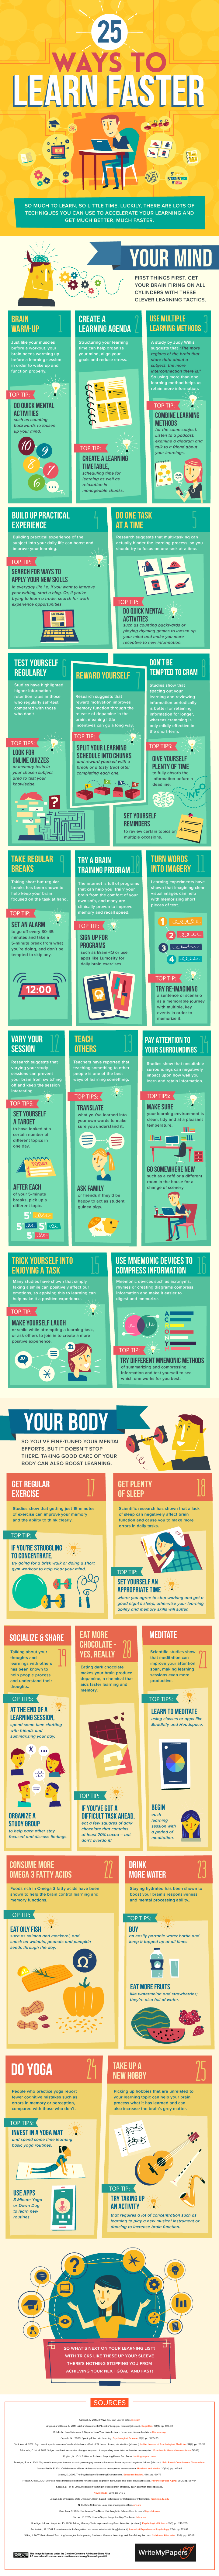 Learning To Learn Faster: The One Superpower Everyone Needs - infographic